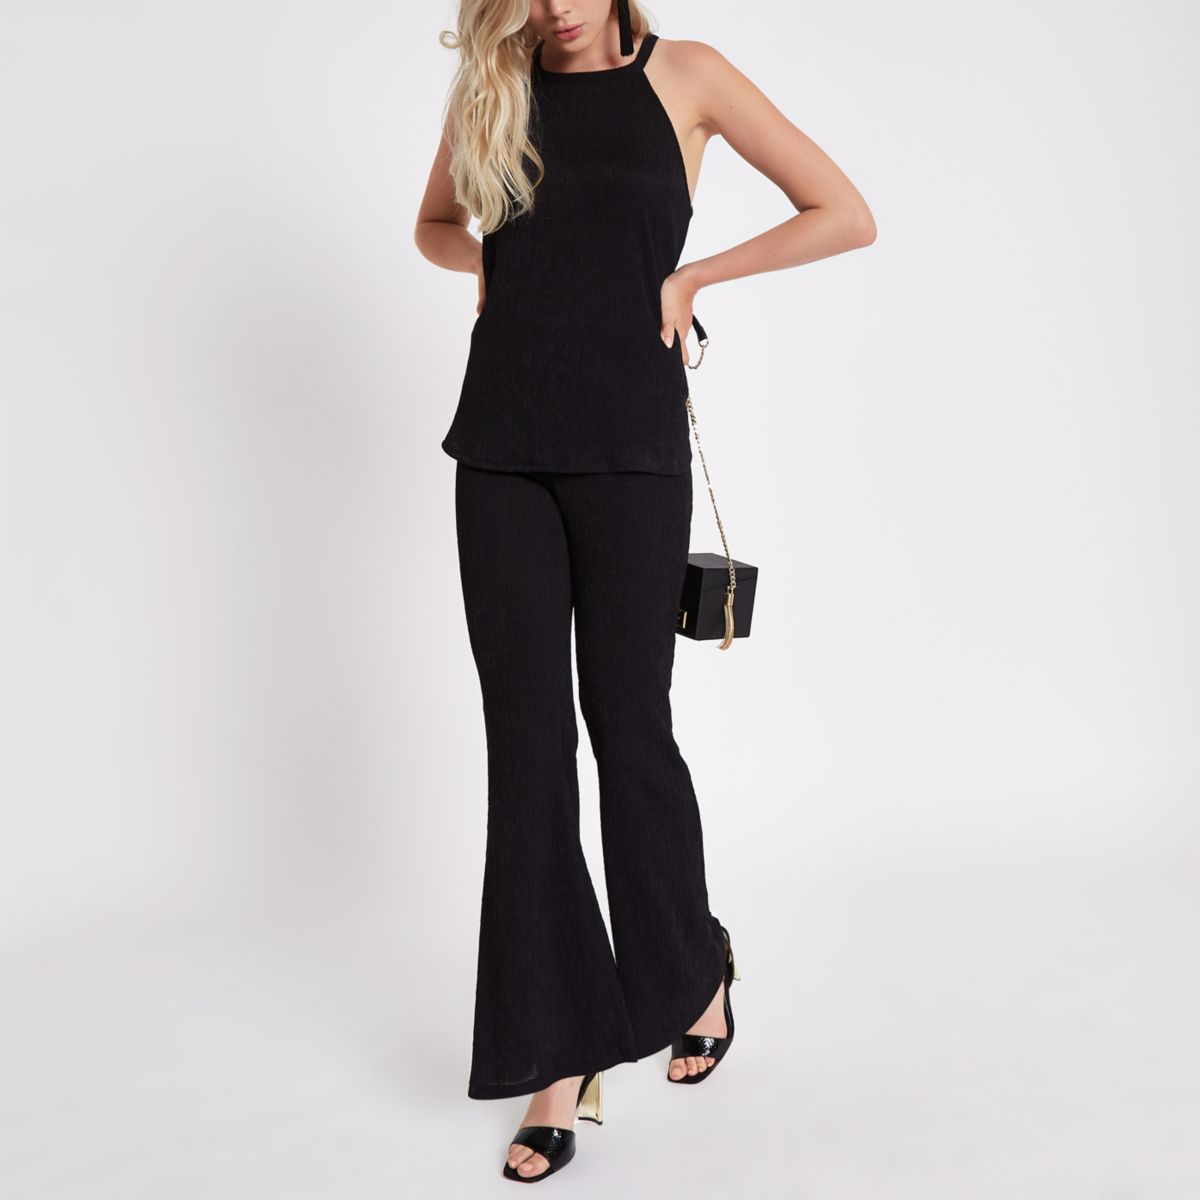 Black textured pants